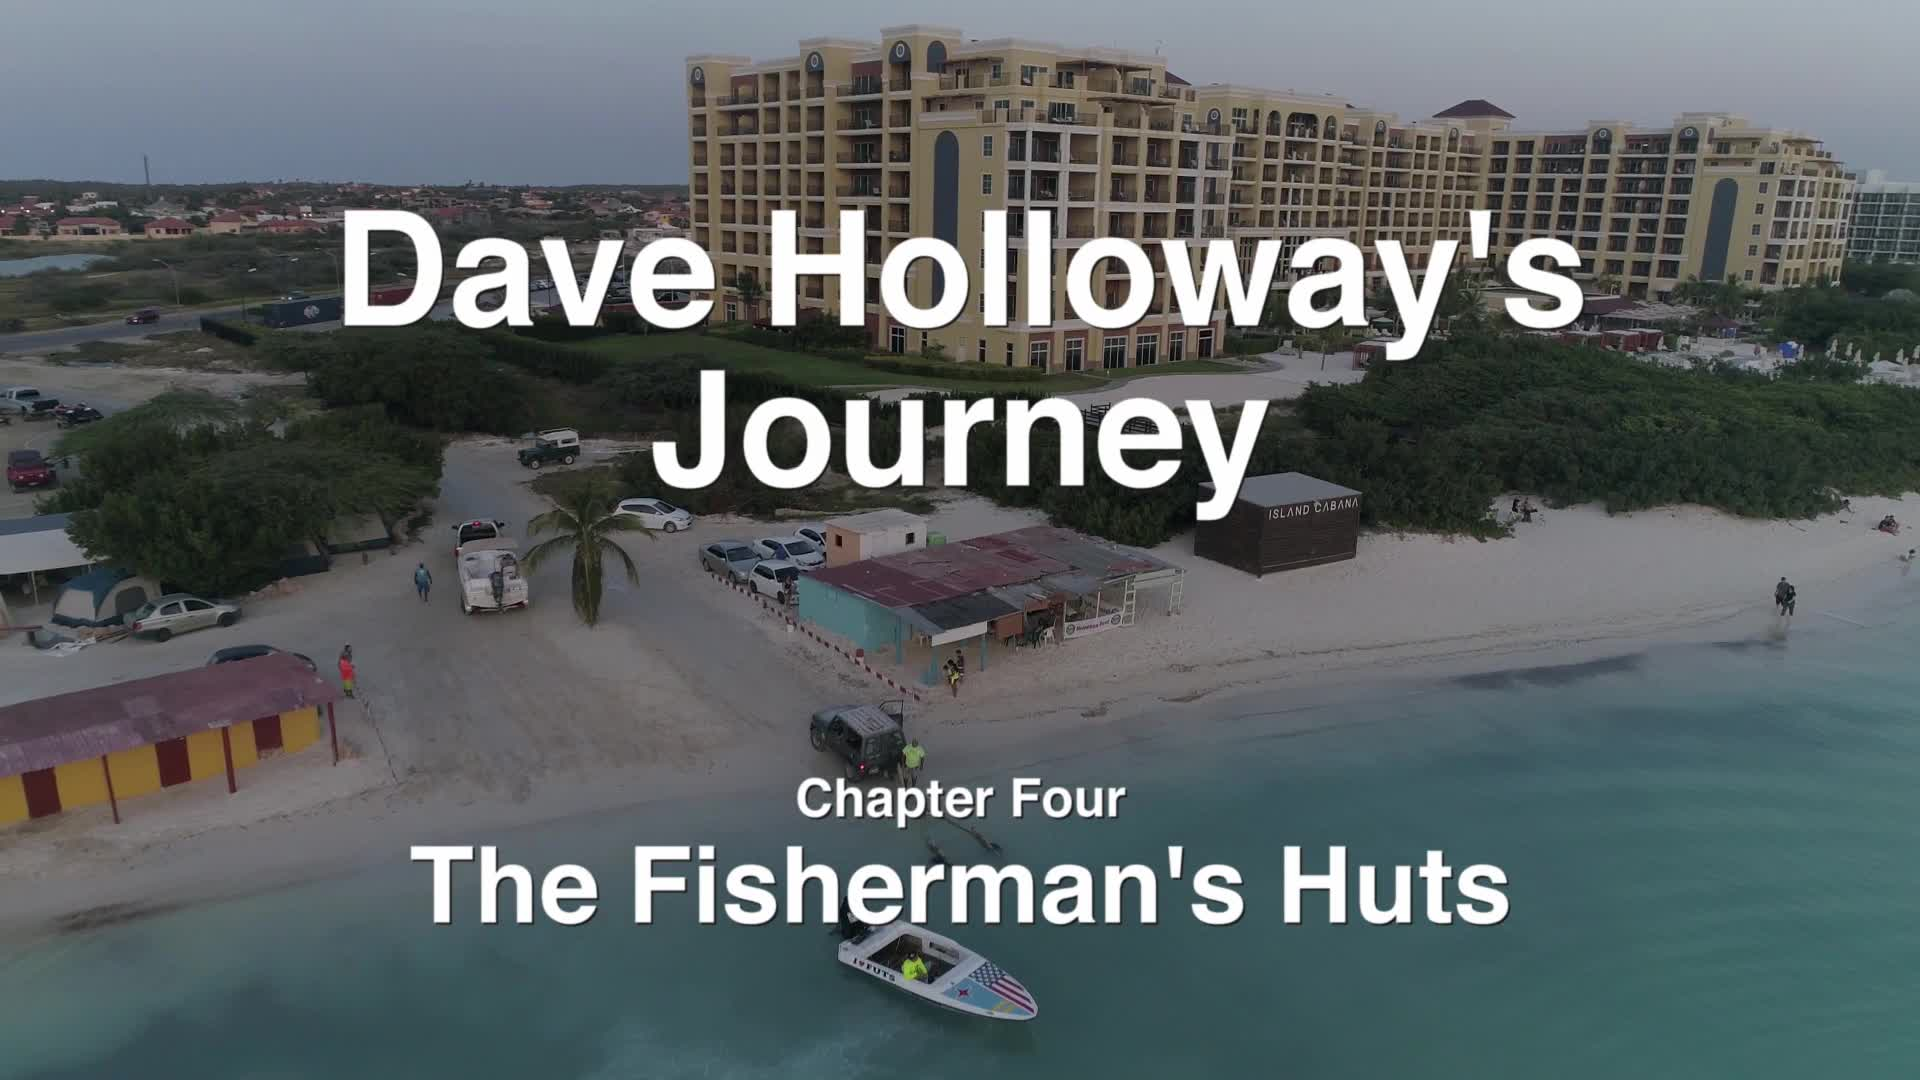 Dave's Aruba Tour: The Fisherman's Huts